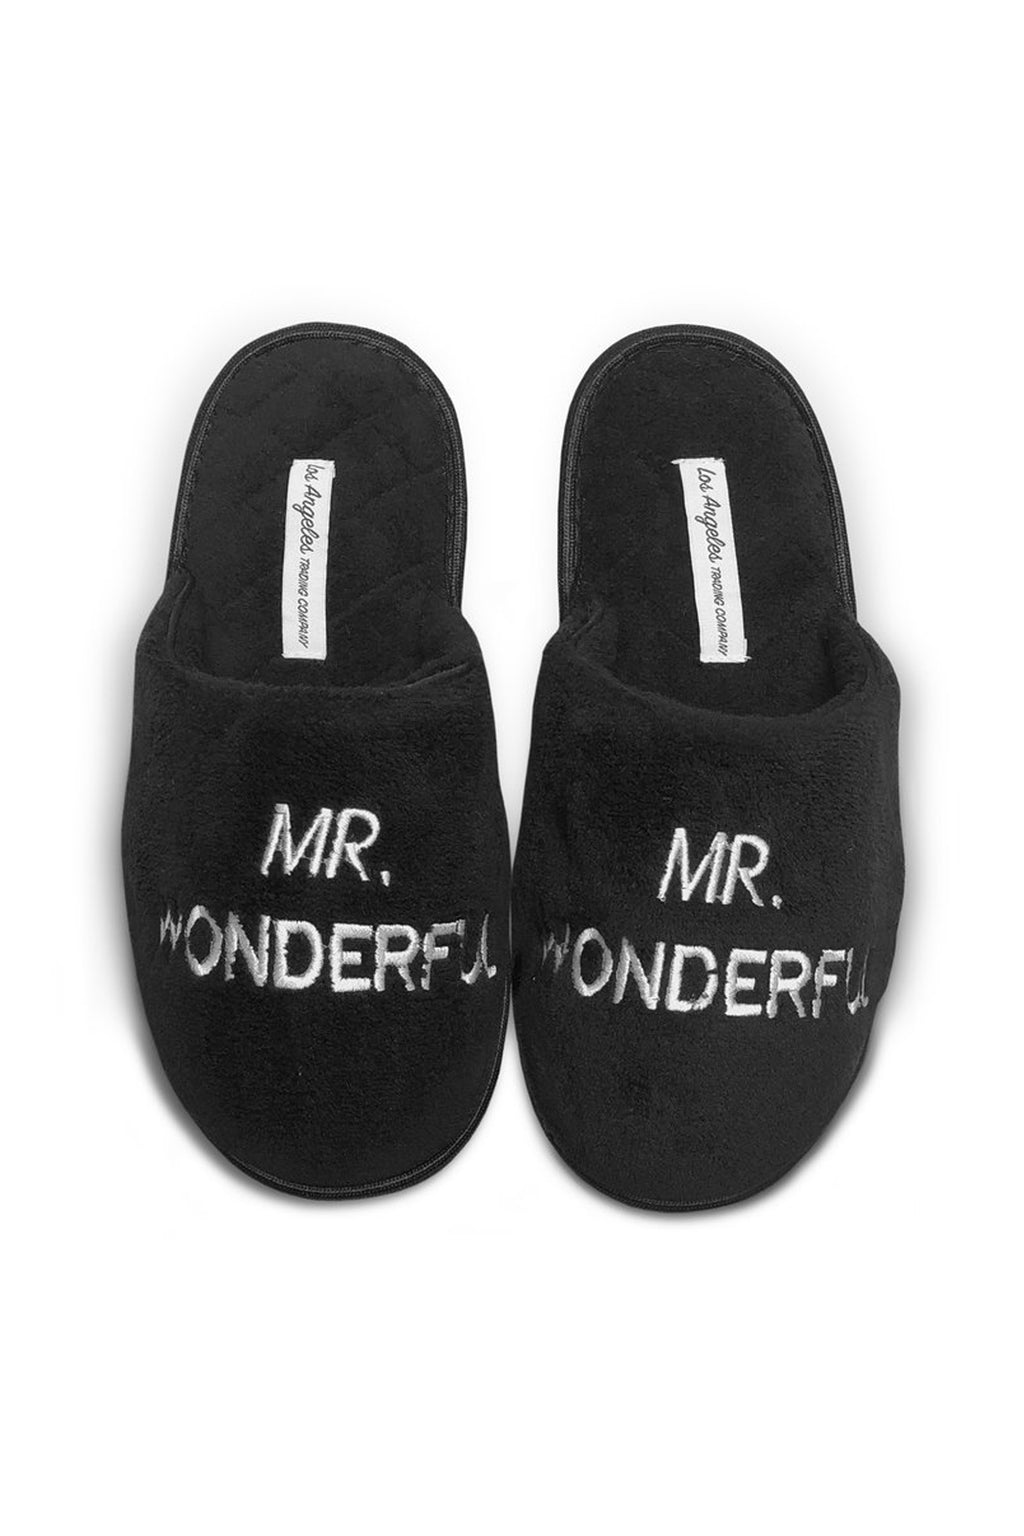 SLIPPERS - Mr. Wonderful